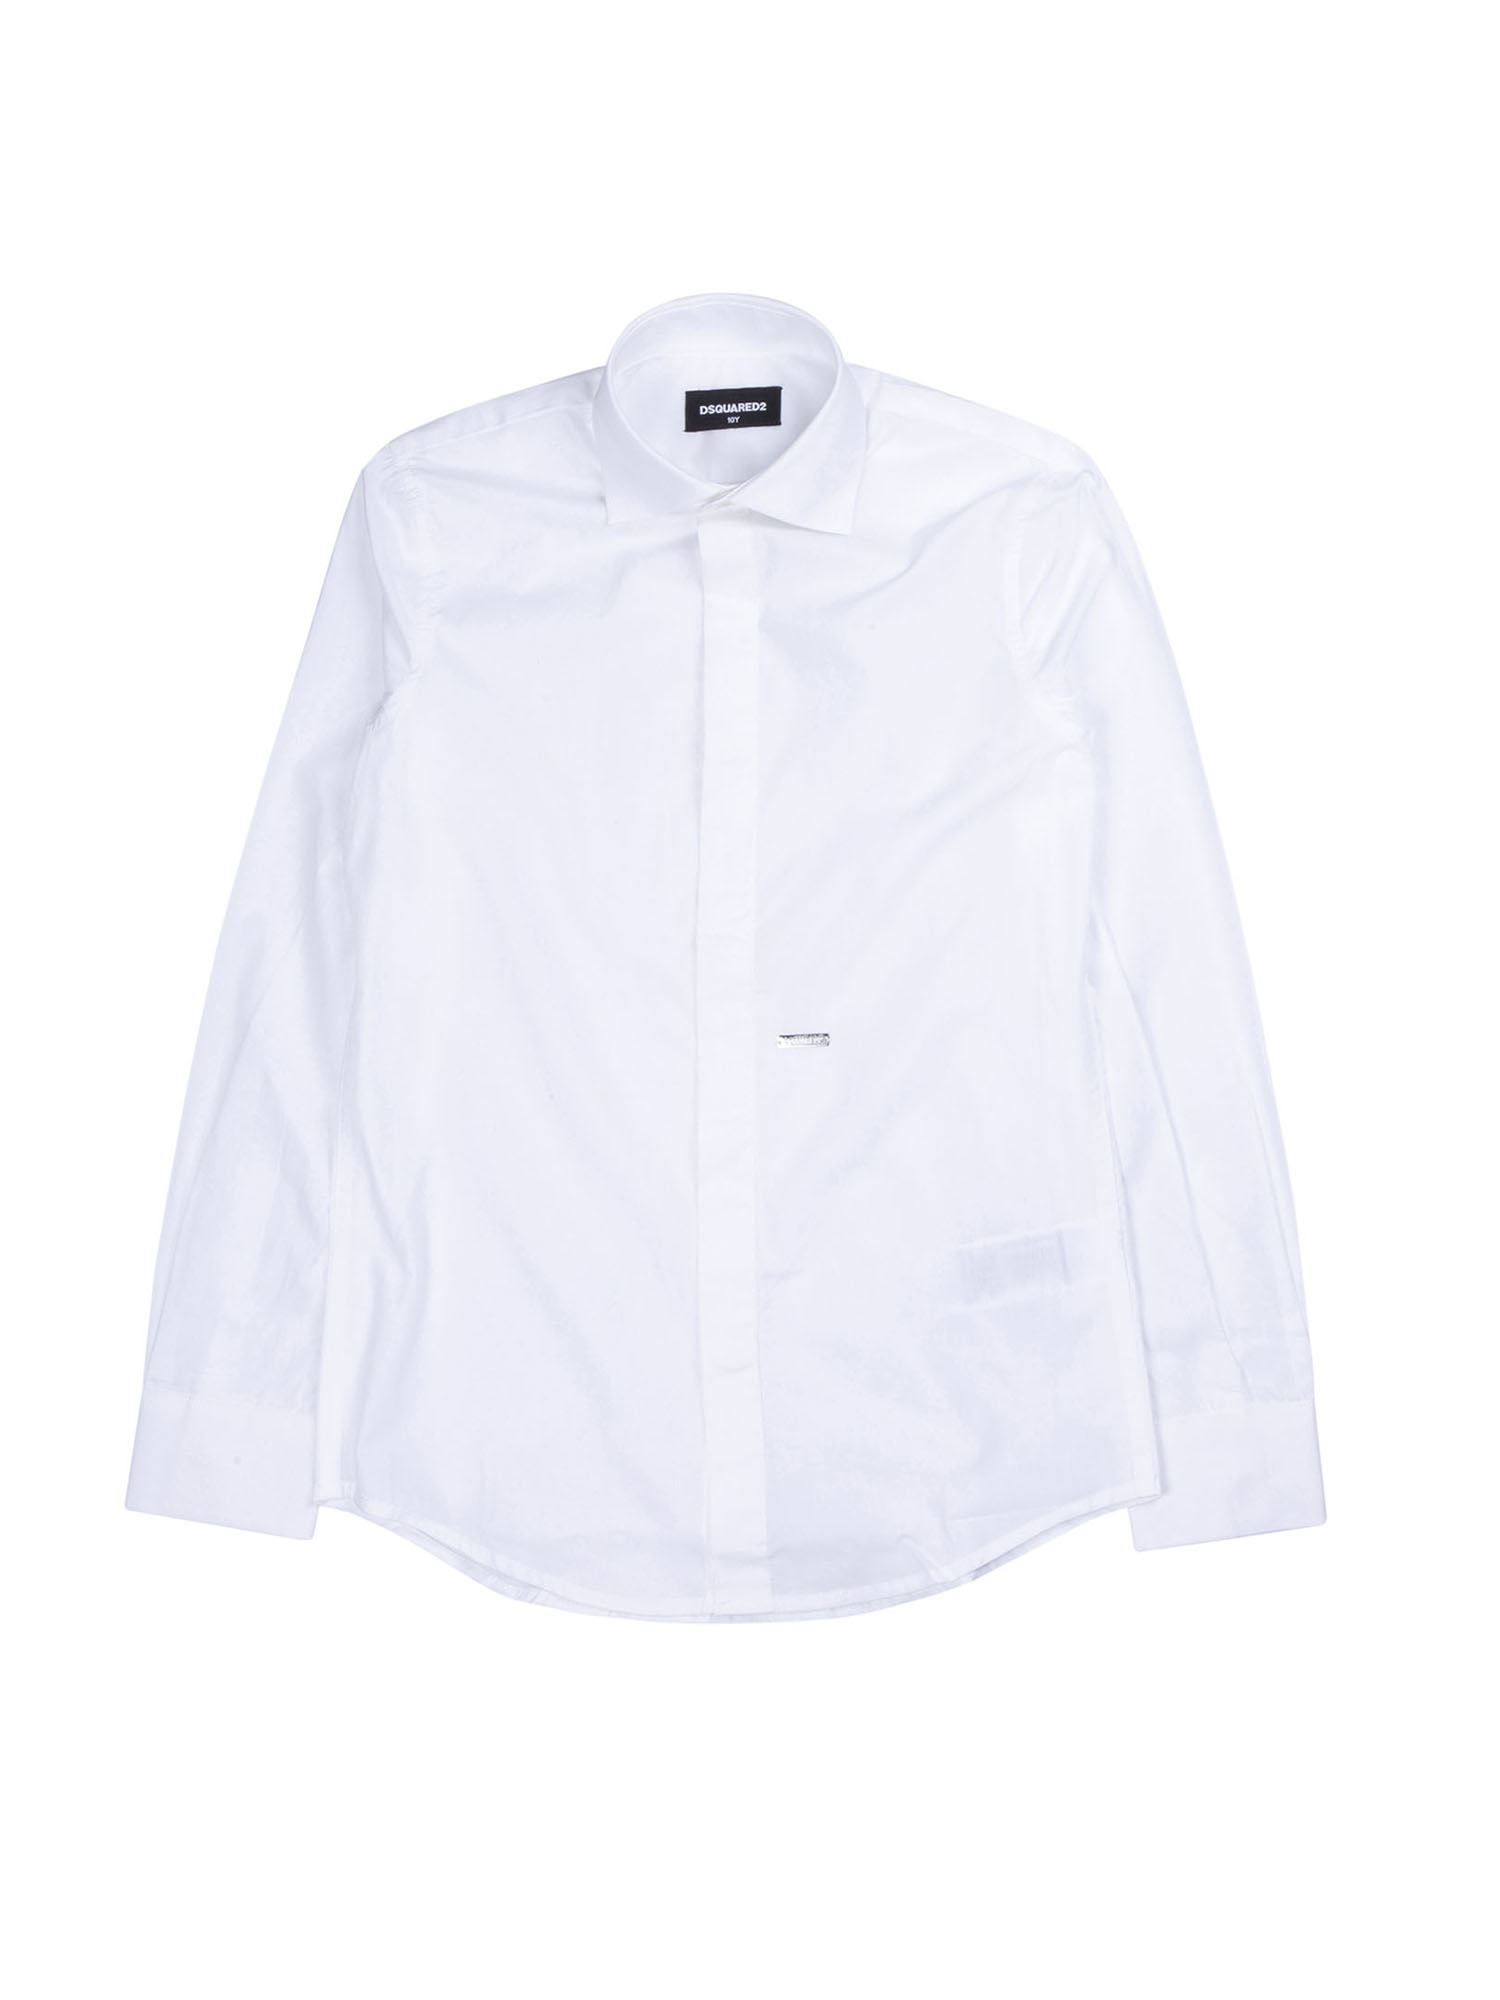 Dsquared2 COTTON SHIRT IN WHITE